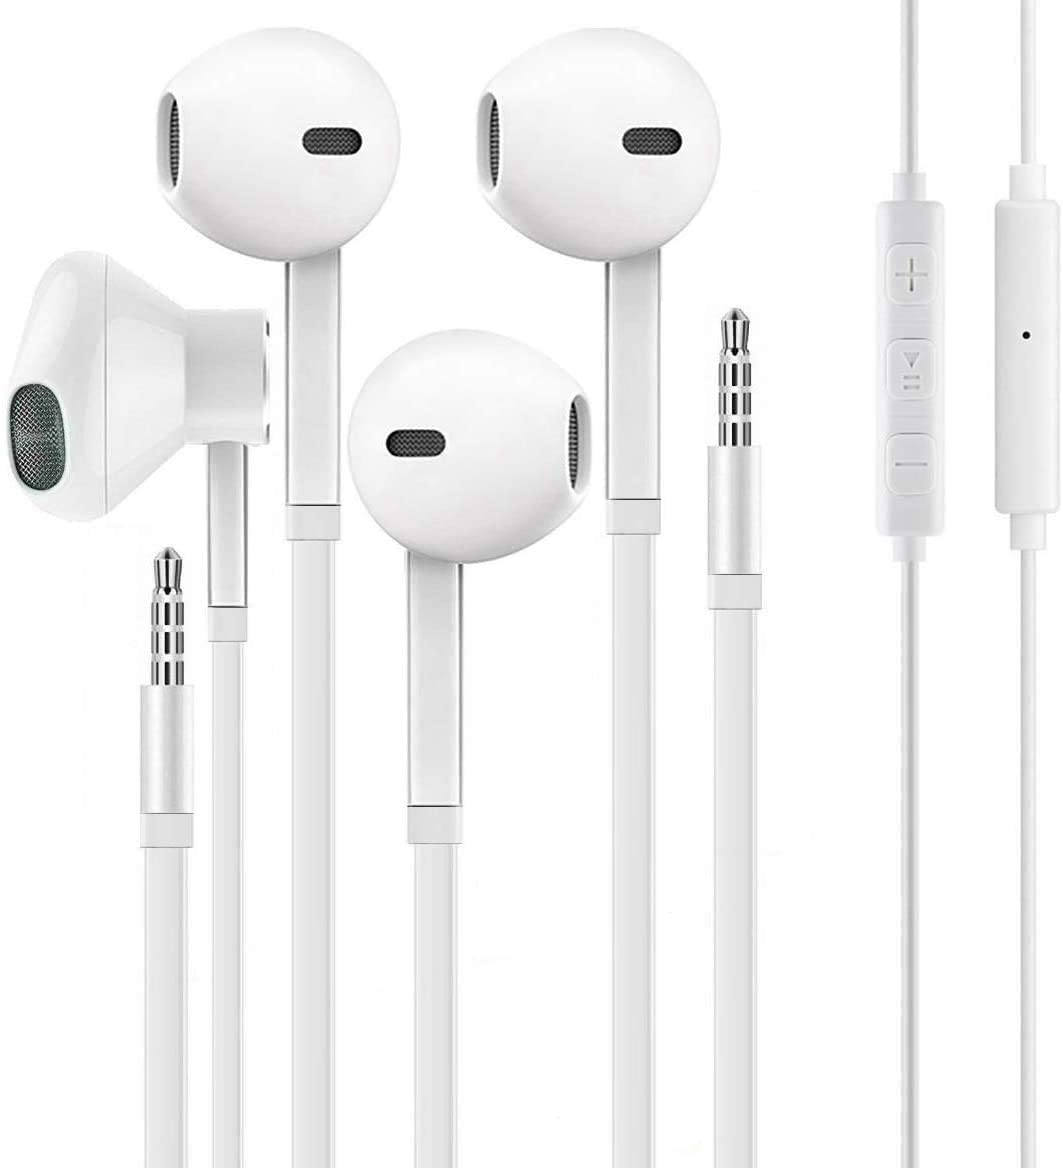 (2 Pack) Aux Headphones/Earbuds 3.5mm Wired Headphones Noise Isolating with Built-in Microphone & Volume Control Compatible with Apple iPhone 6 SE 5S 4 iPod iPad Samsung/Android MP3